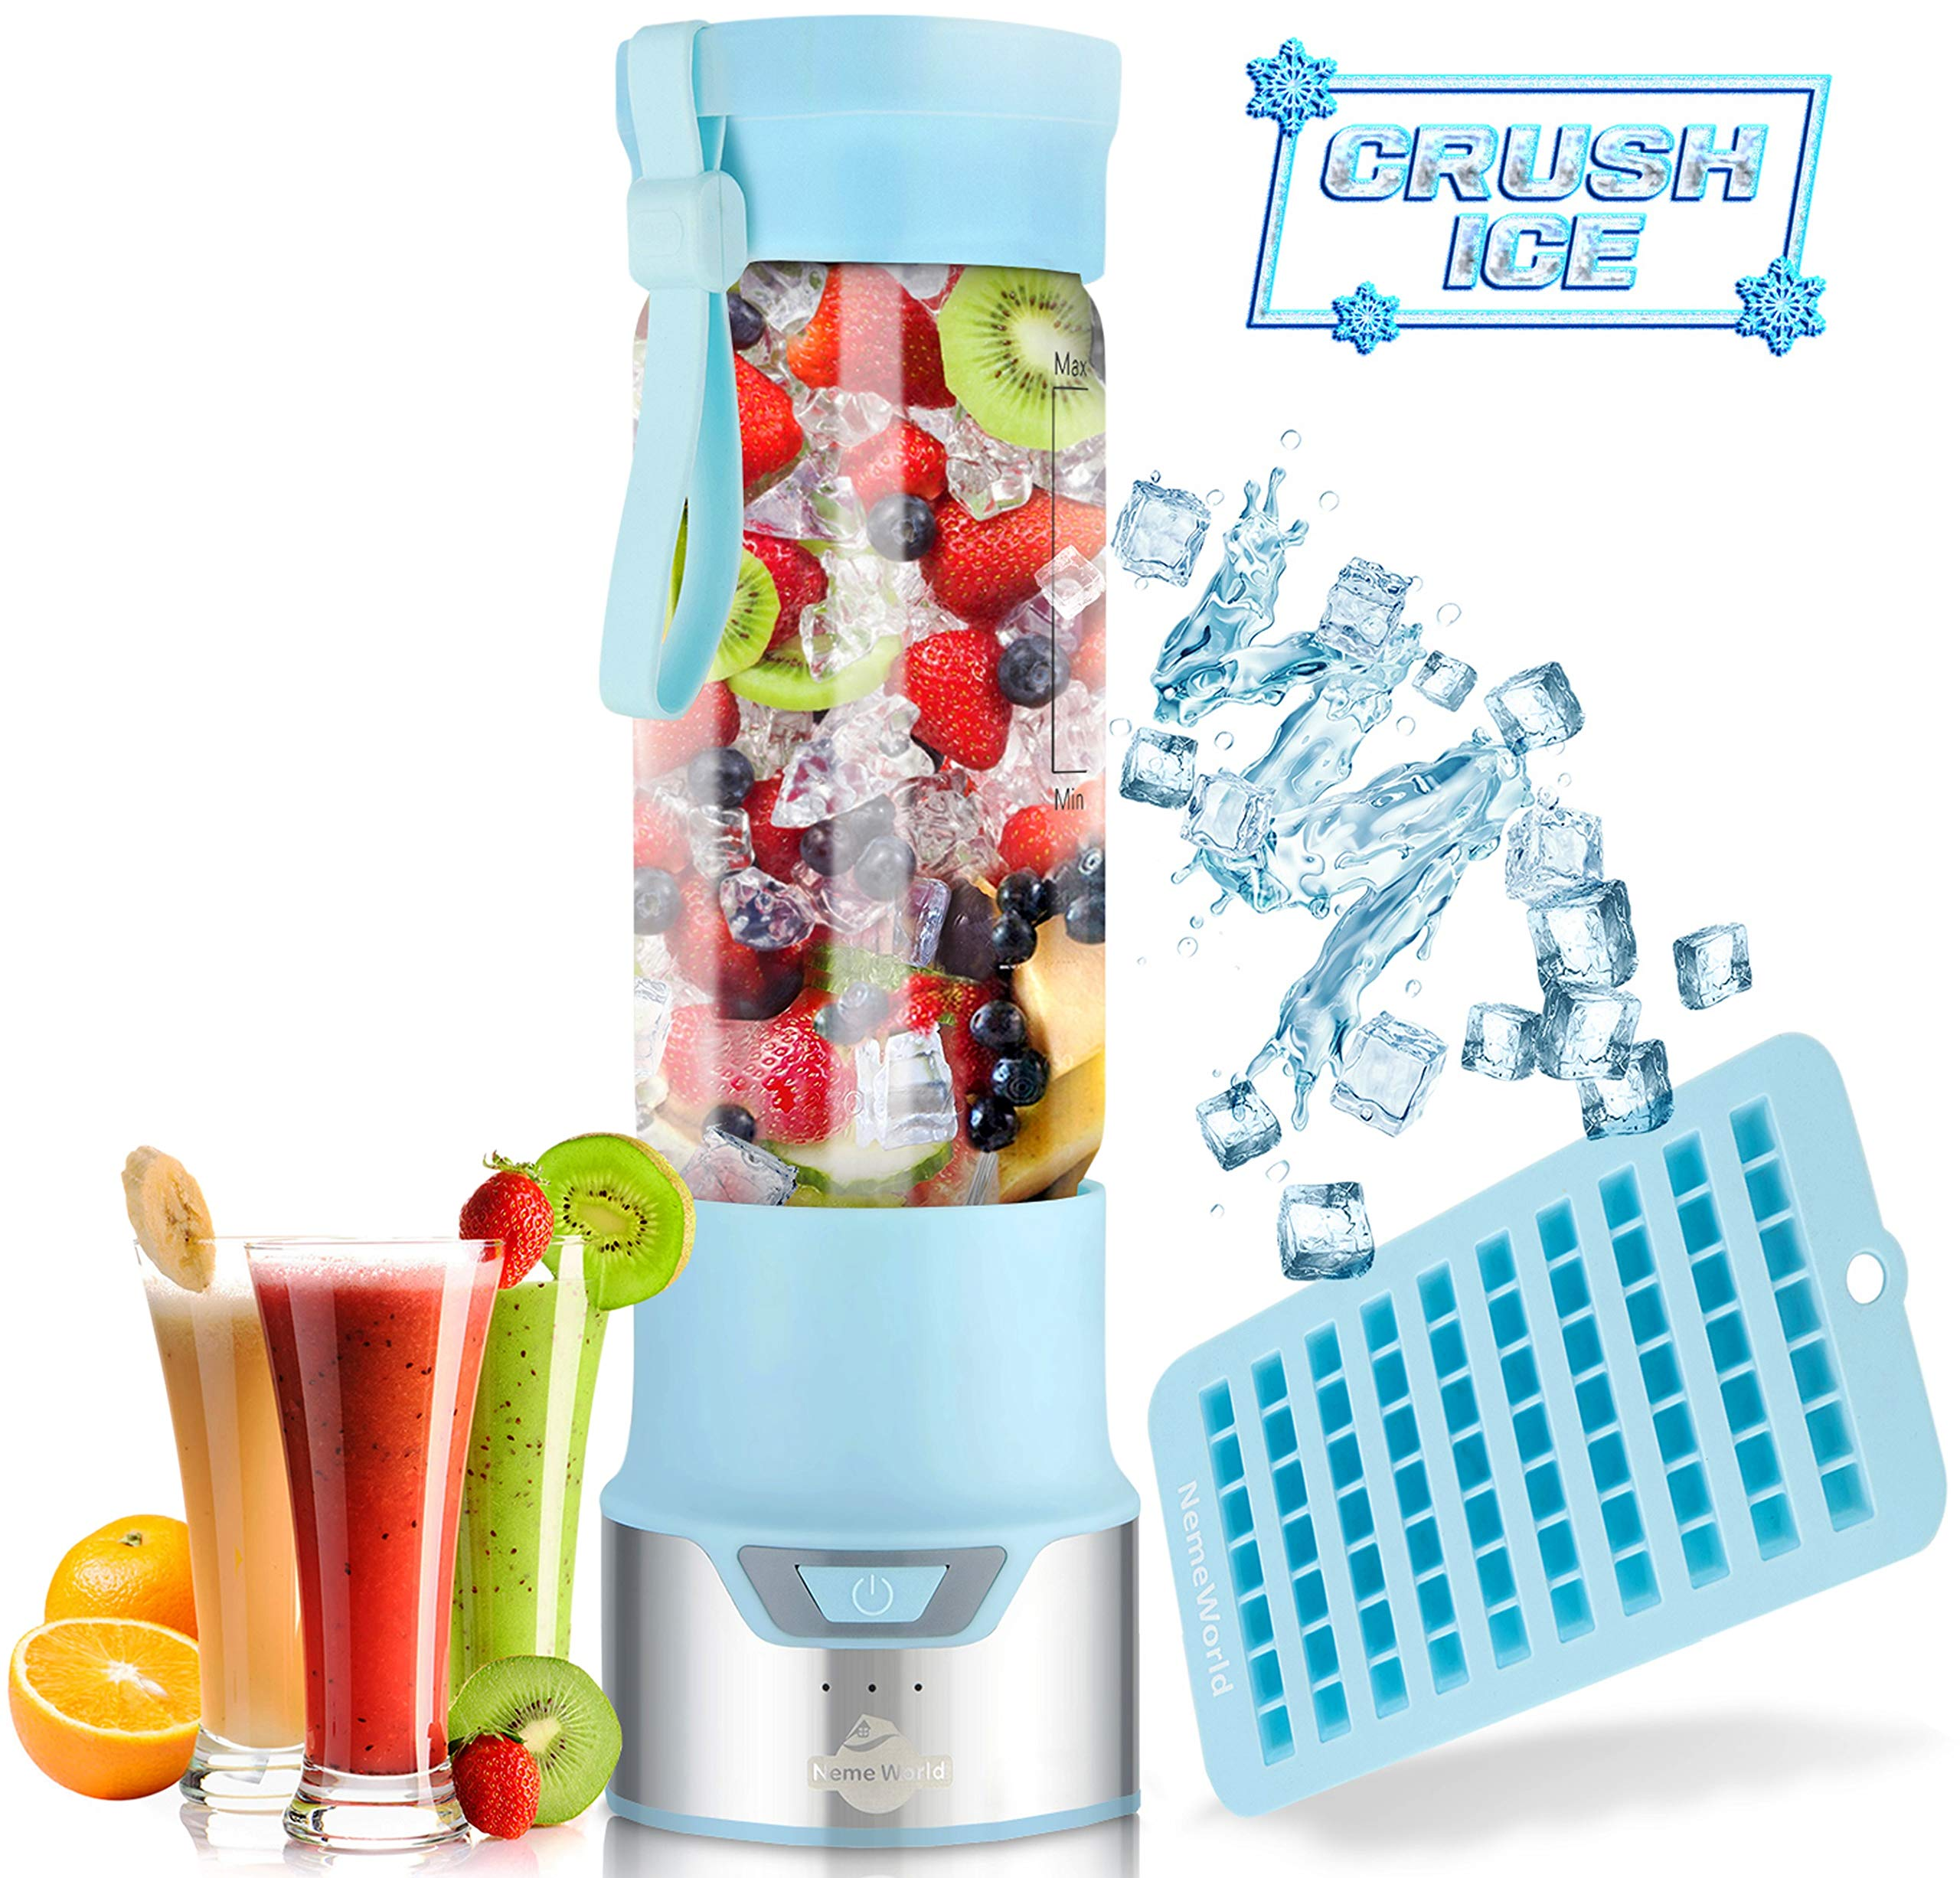 ICER Portable Blender for Shakes and Smoothies - Blend Ice Easy with Powerful 12V Jet Motor - Personal, Single Serve Bottle - Fruit Juicer with 6000 mAh USB Rechargeable Battery - BPA Free 450ml Blue by NemeWorld